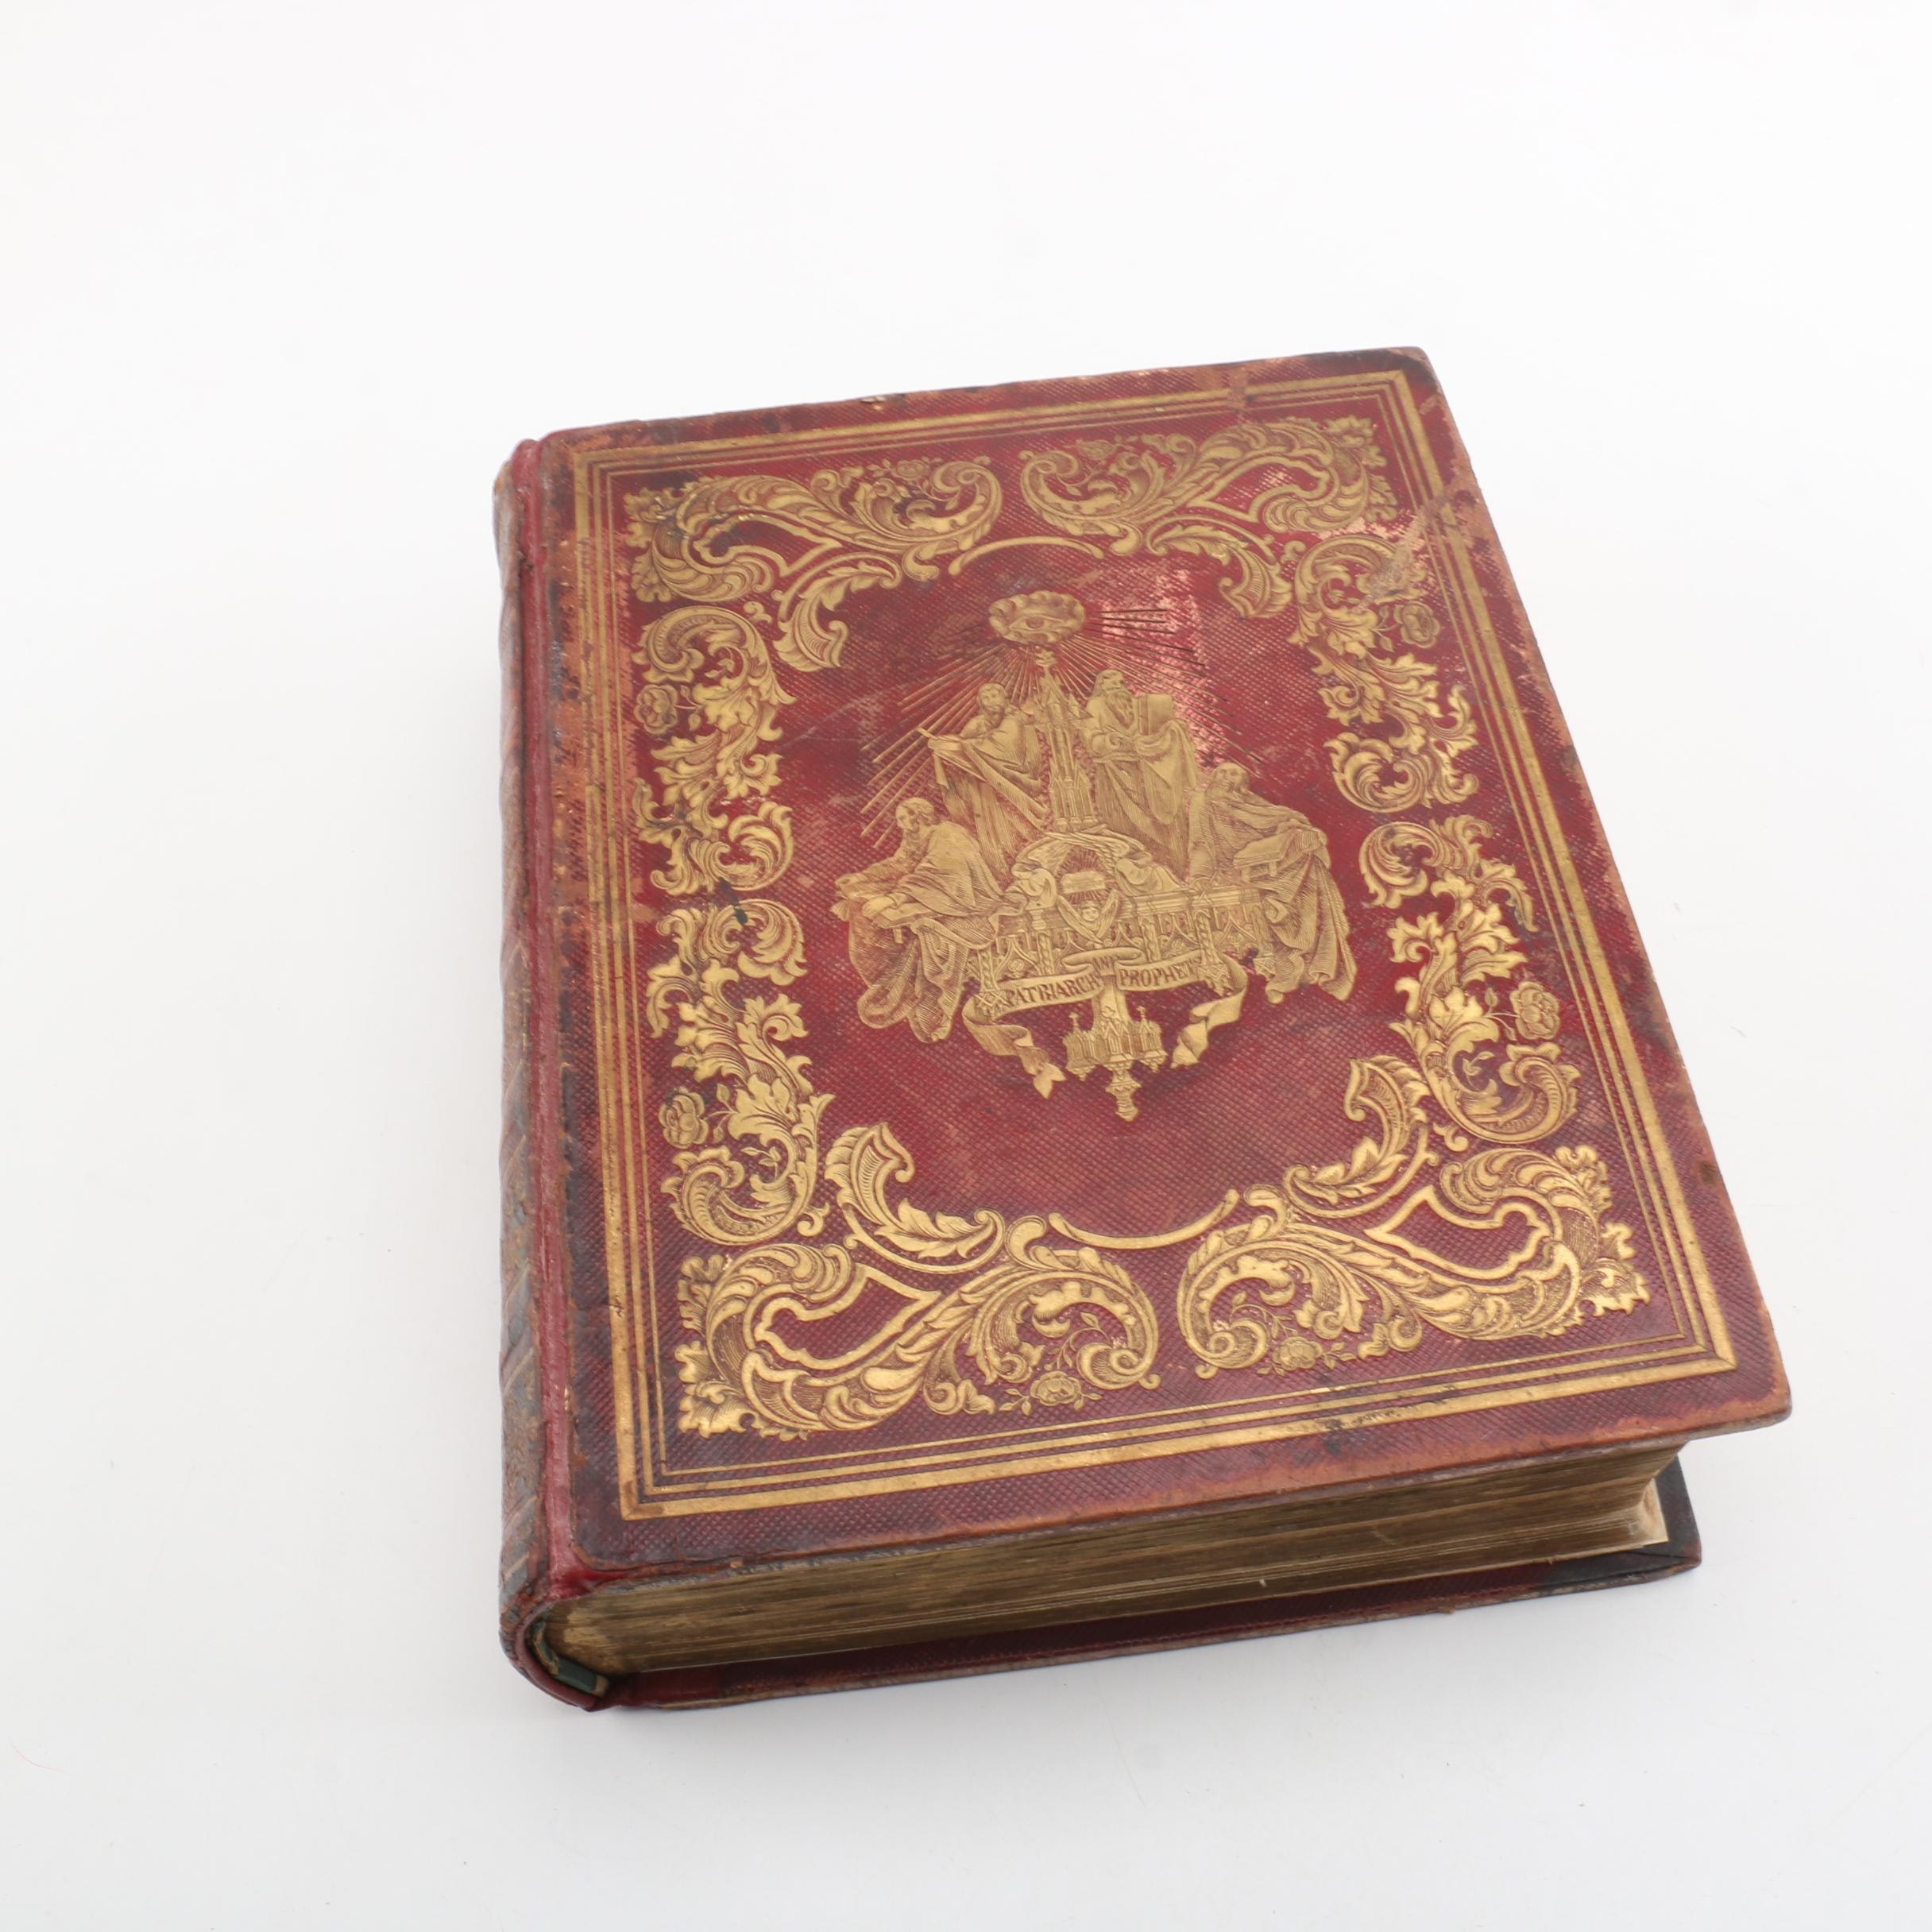 1852 Leather Bound Bible Published by John B. Perry